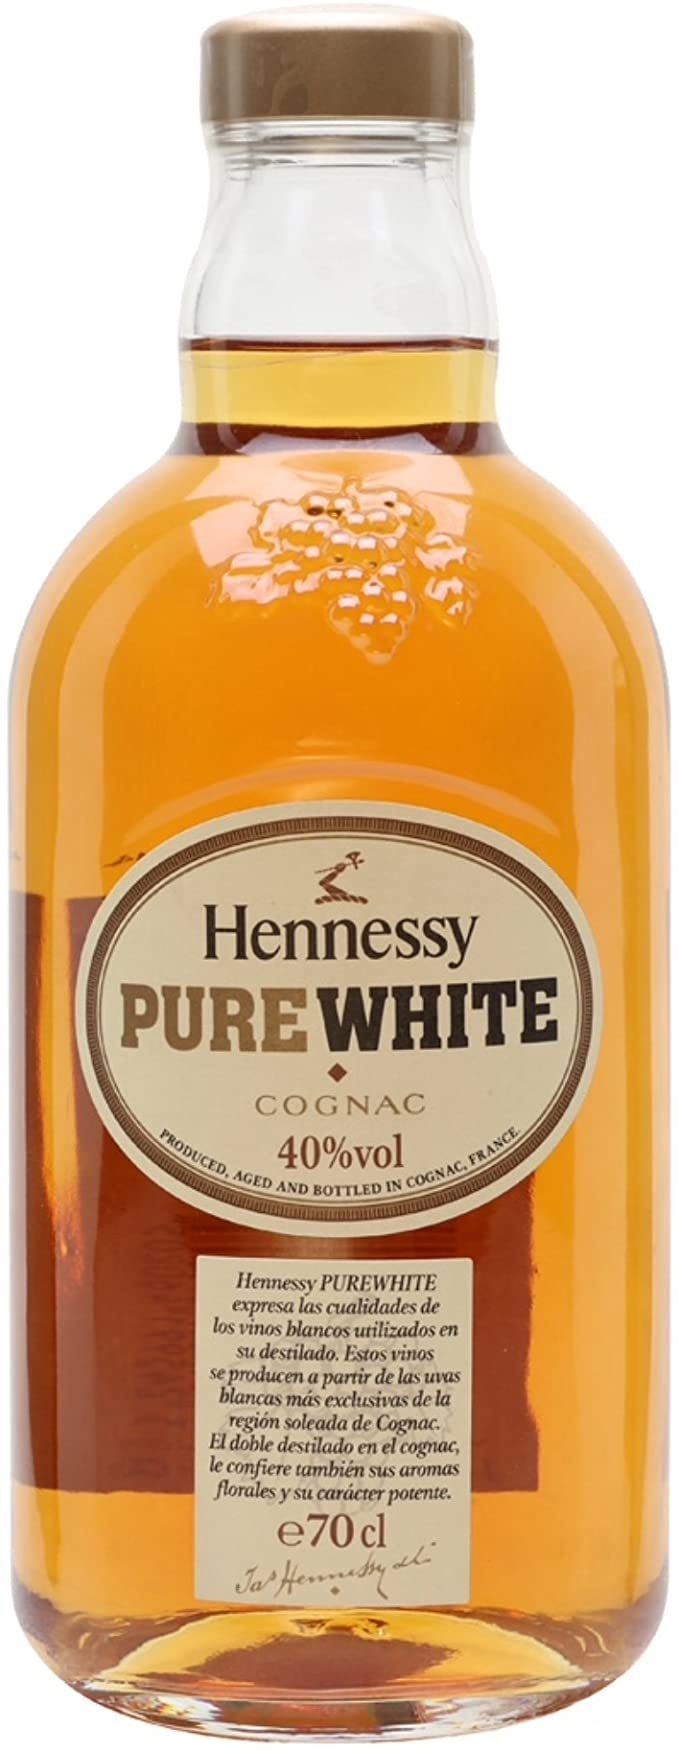 Hennessy Pure White Cognac 70cl